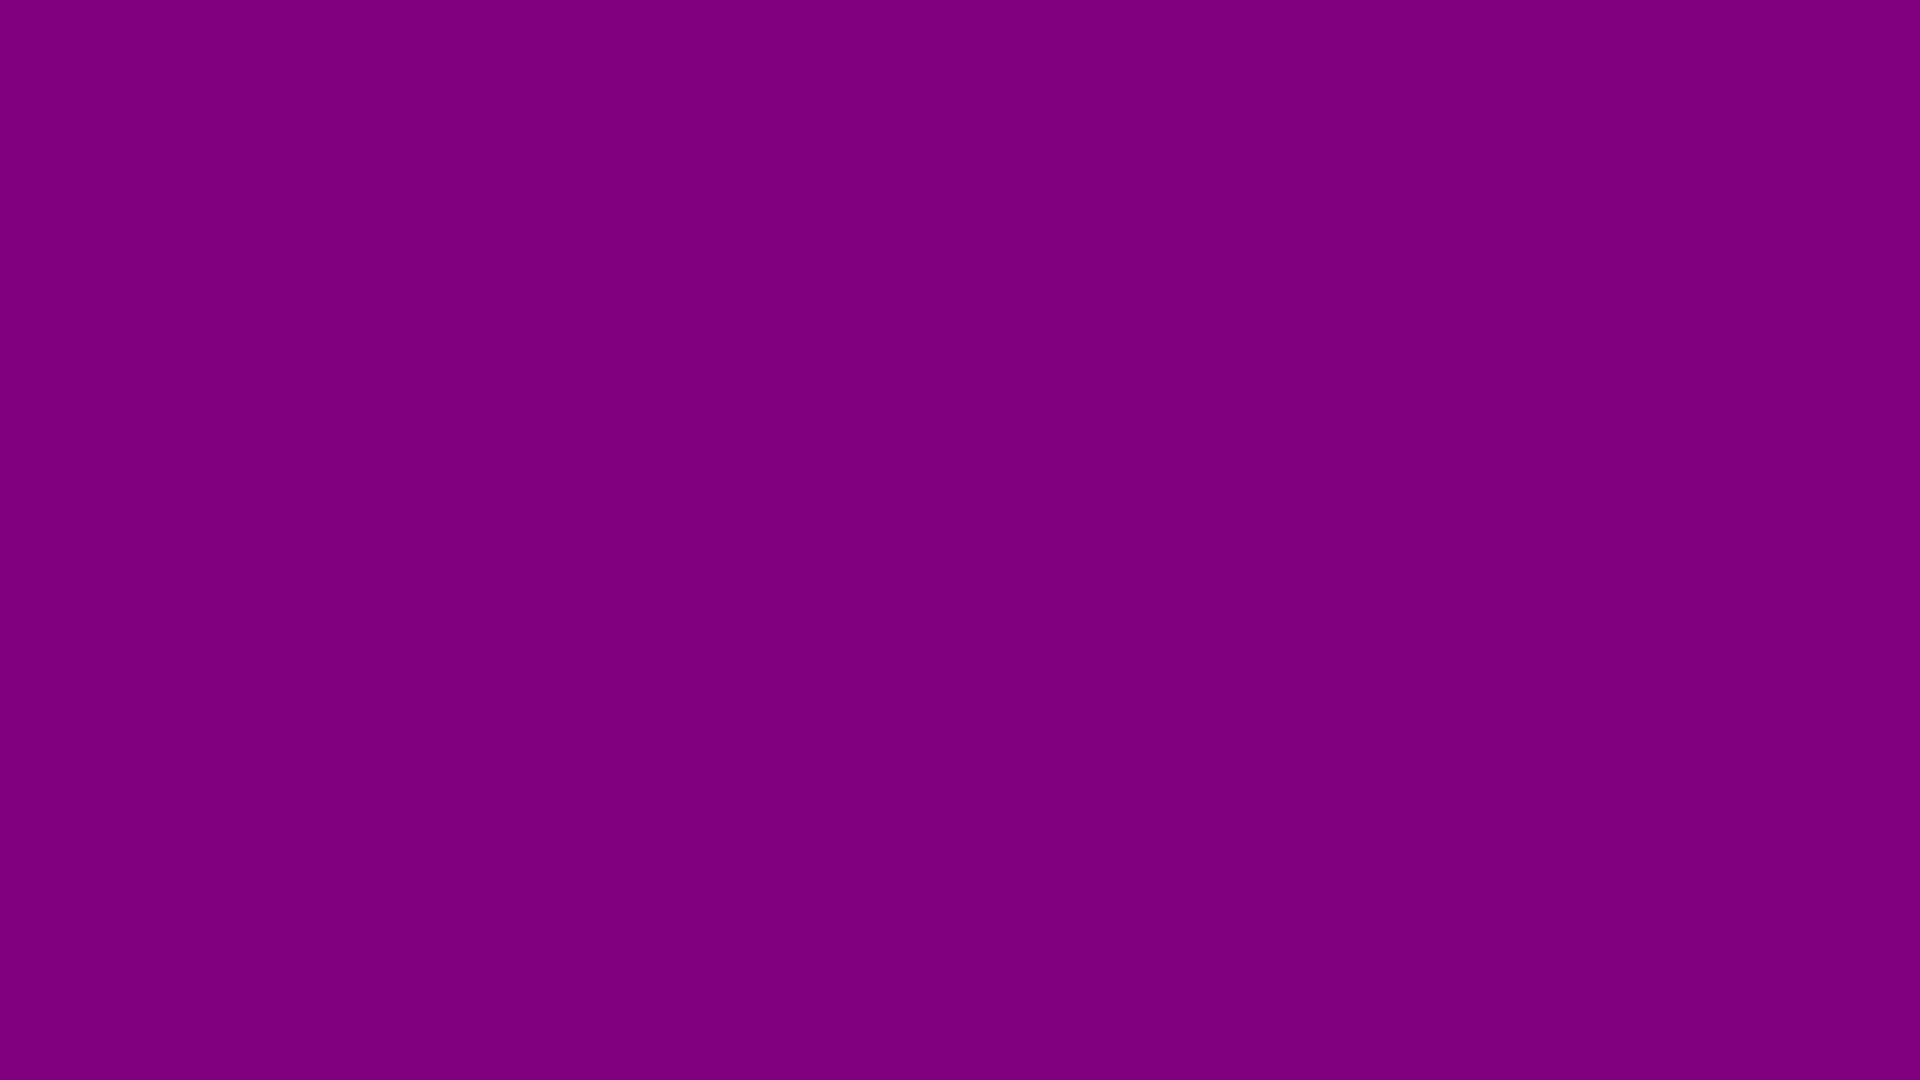 1920x1080 Purple Web Solid Color Background